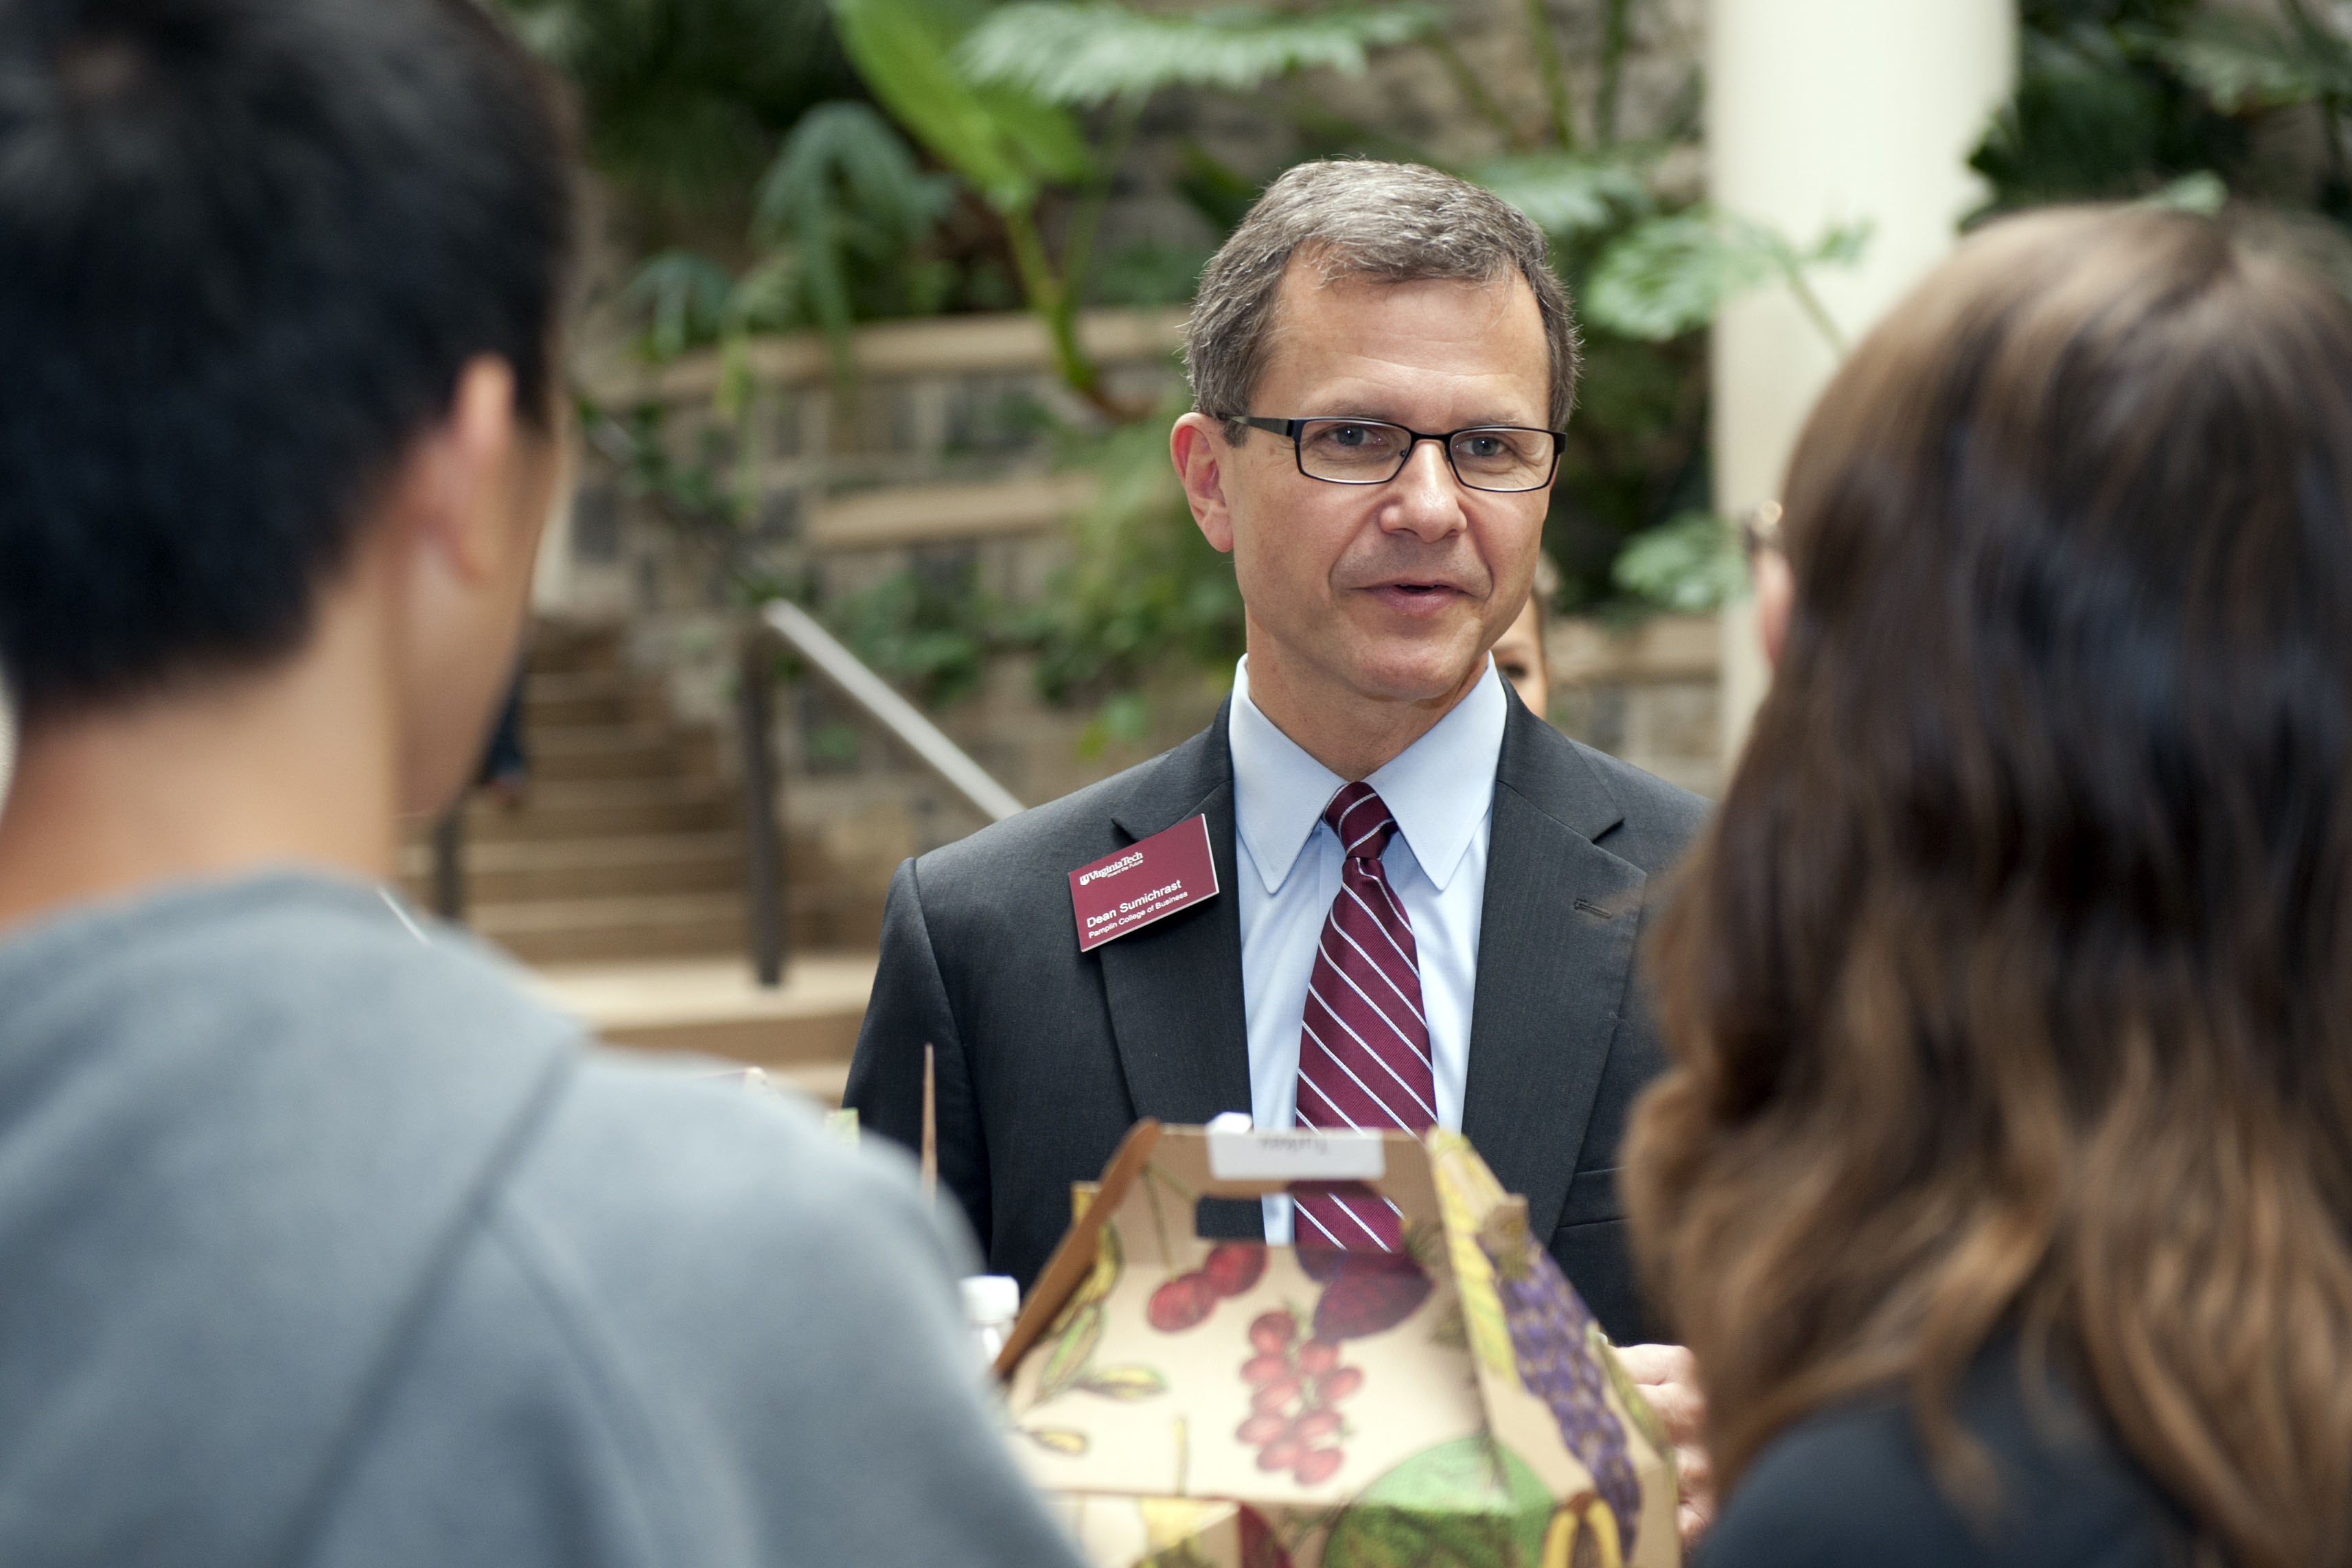 Dean Sumichrast meets students in one of his initiatives to foster a stronger Pamplin community.